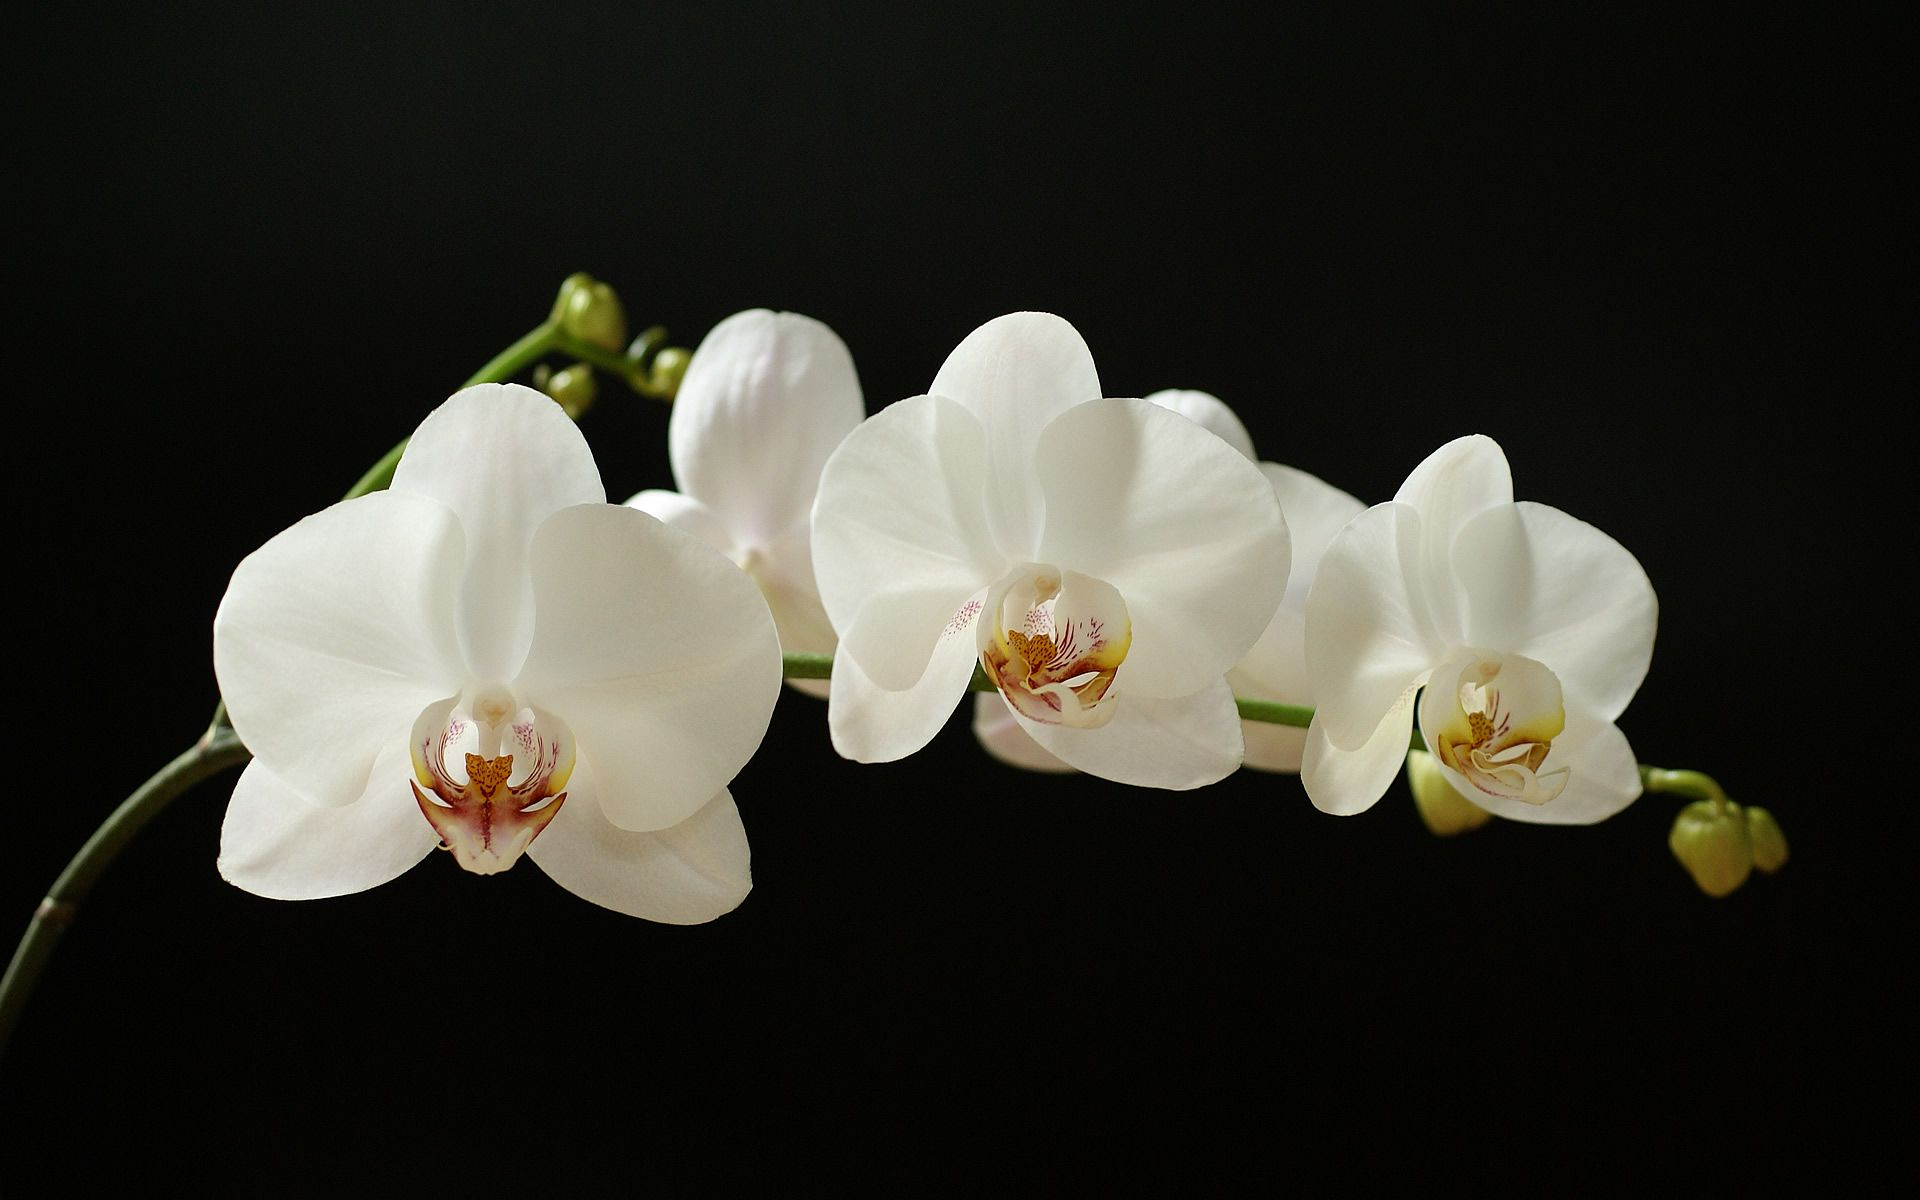 Orchid - one of a kind!